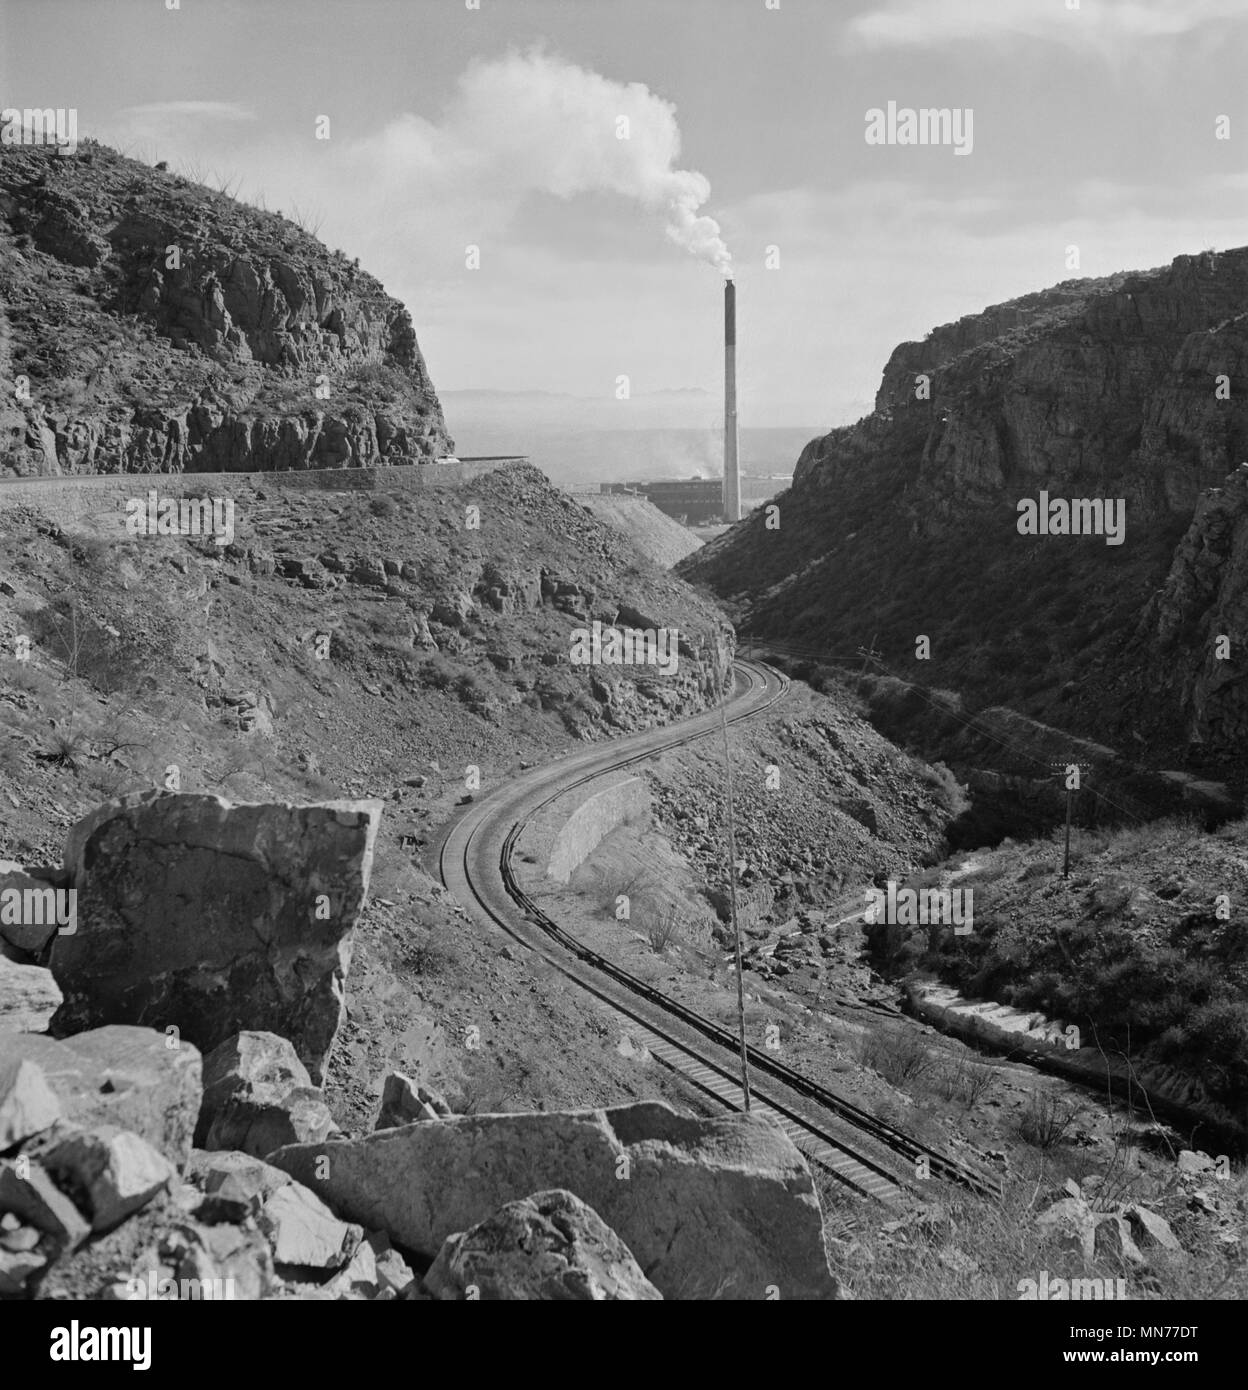 Industrial Railroad and Smokestack of Large Copper Smelter that Supplies Great Quantities of Copper so vital to War Effort, Phelps-Dodge Mining Company, Morenci, Arizona, USA, Fritz Henle for Office of War Information, December 1942 Stock Photo